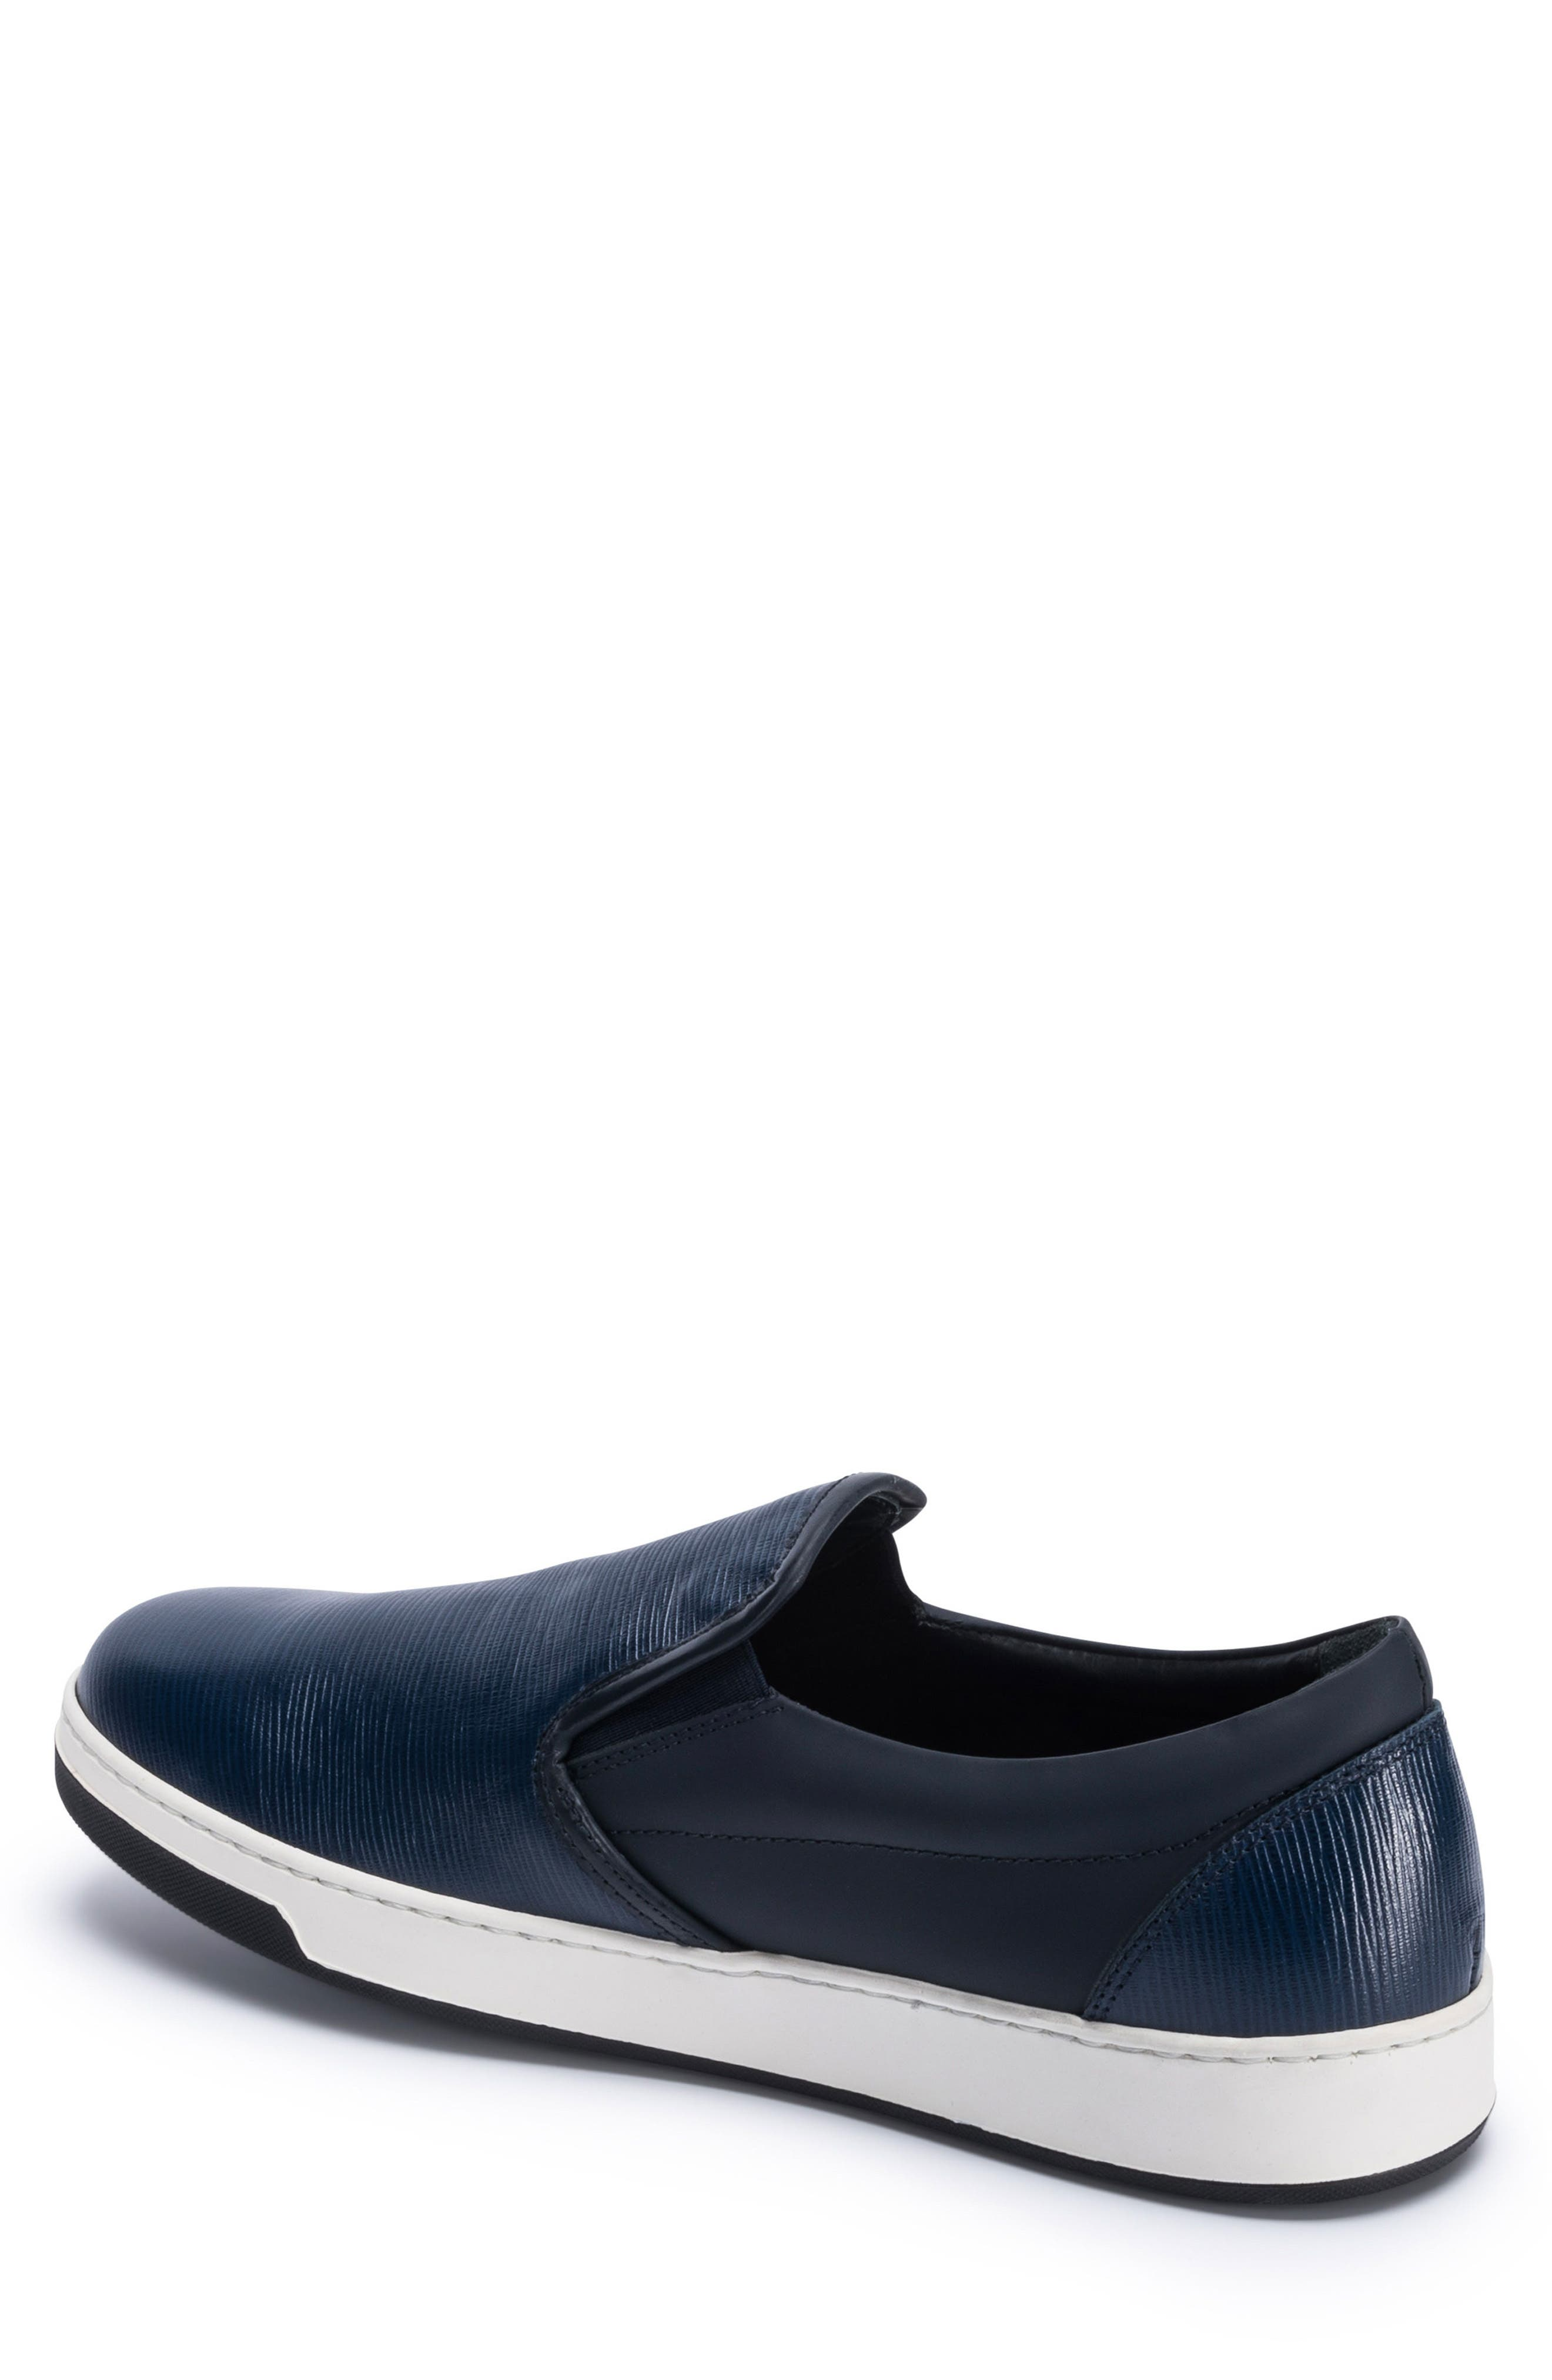 Santorini Slip-On Sneaker,                             Alternate thumbnail 2, color,                             Blue